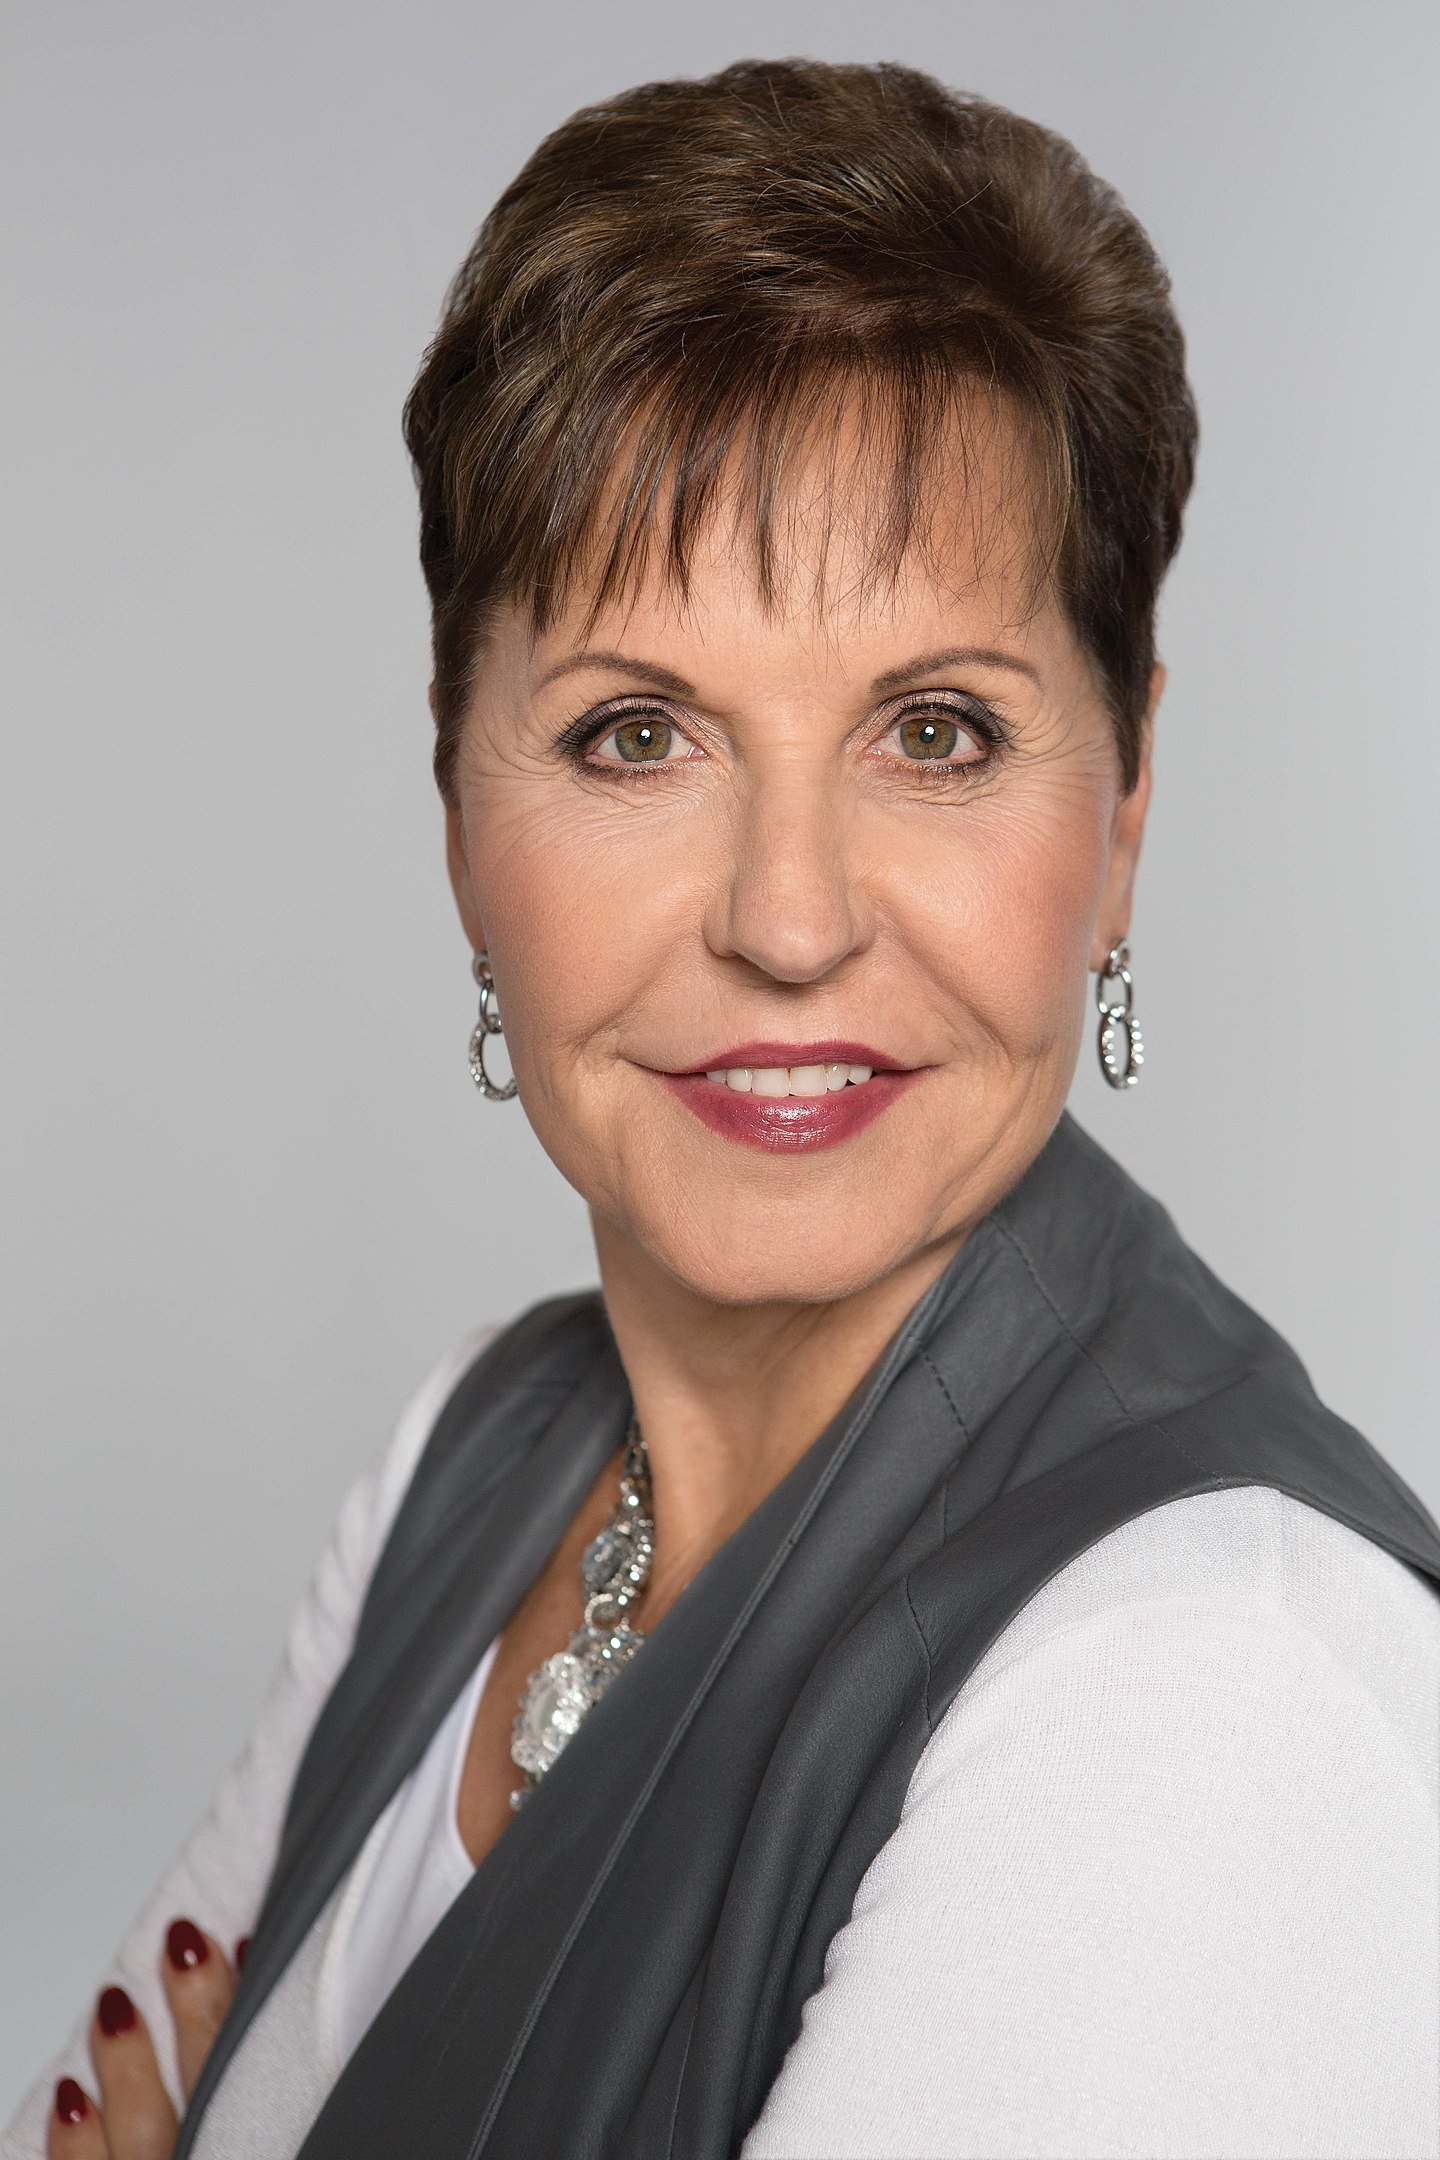 Joyce Meyer in 2015 | Photo By JM viki - Own work, CC BY-SA 4.0, Wikimedia Commons Images